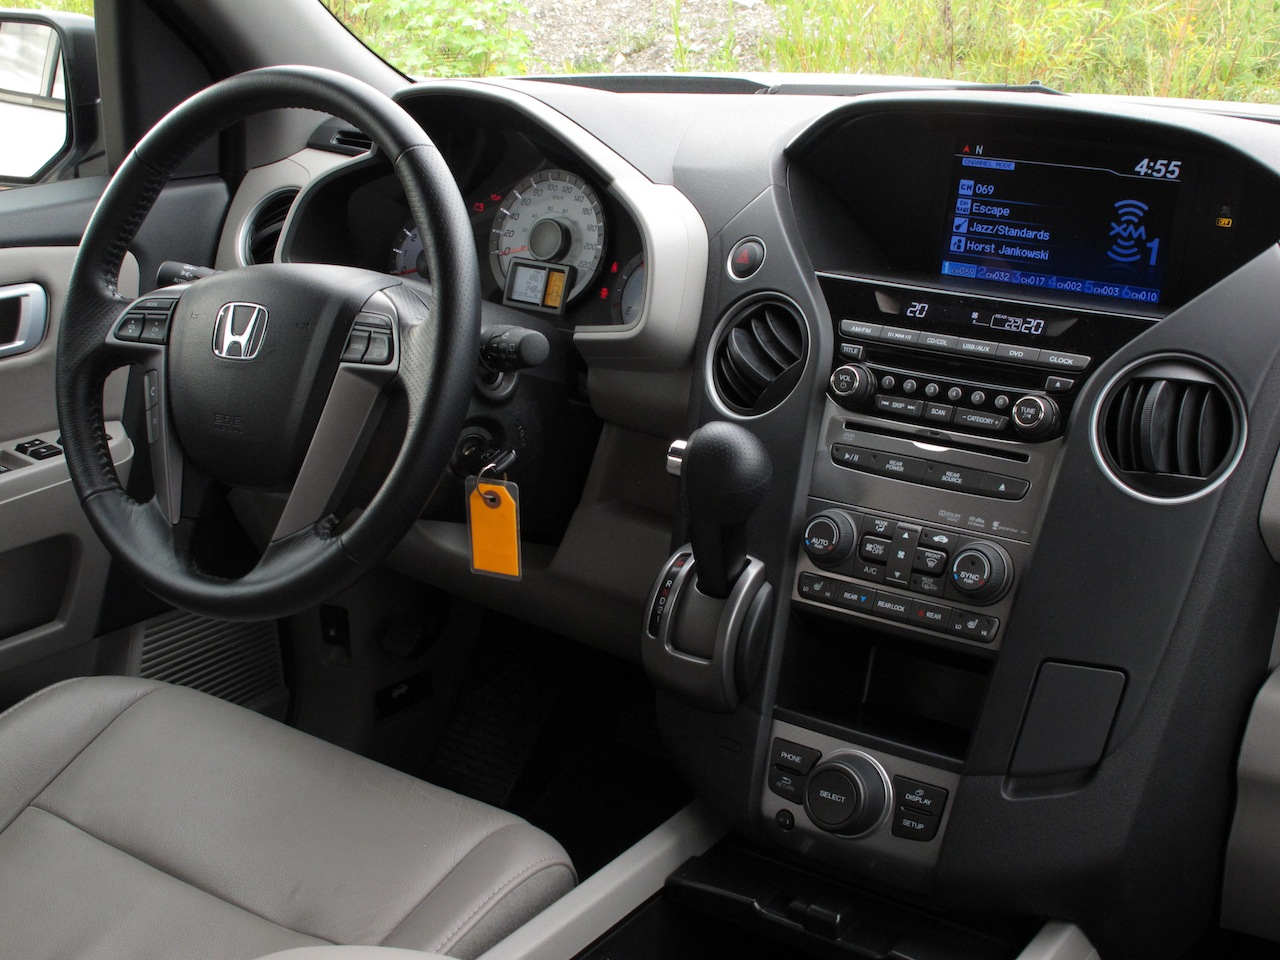 2014 honda pilot interior photo gallery official honda for 2014 honda pilot dimensions